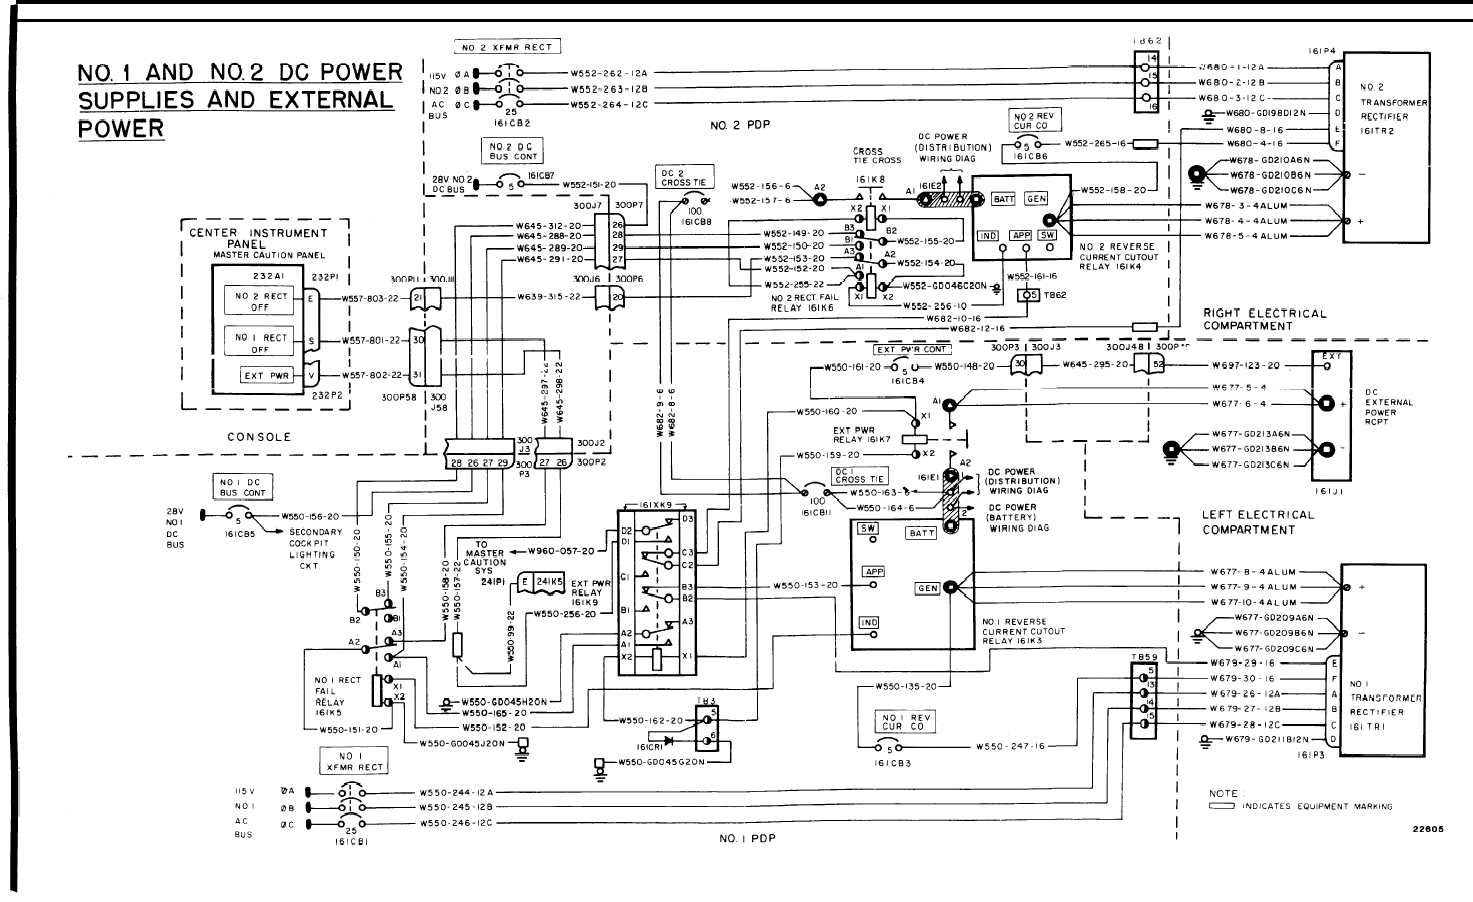 Dc Power System Wiring Diagram Tm 55 1520 240 T 3 968 P3 2 Pdp 16 325 Helicopters With Engine Air Particle Separator Provisions 142 Change